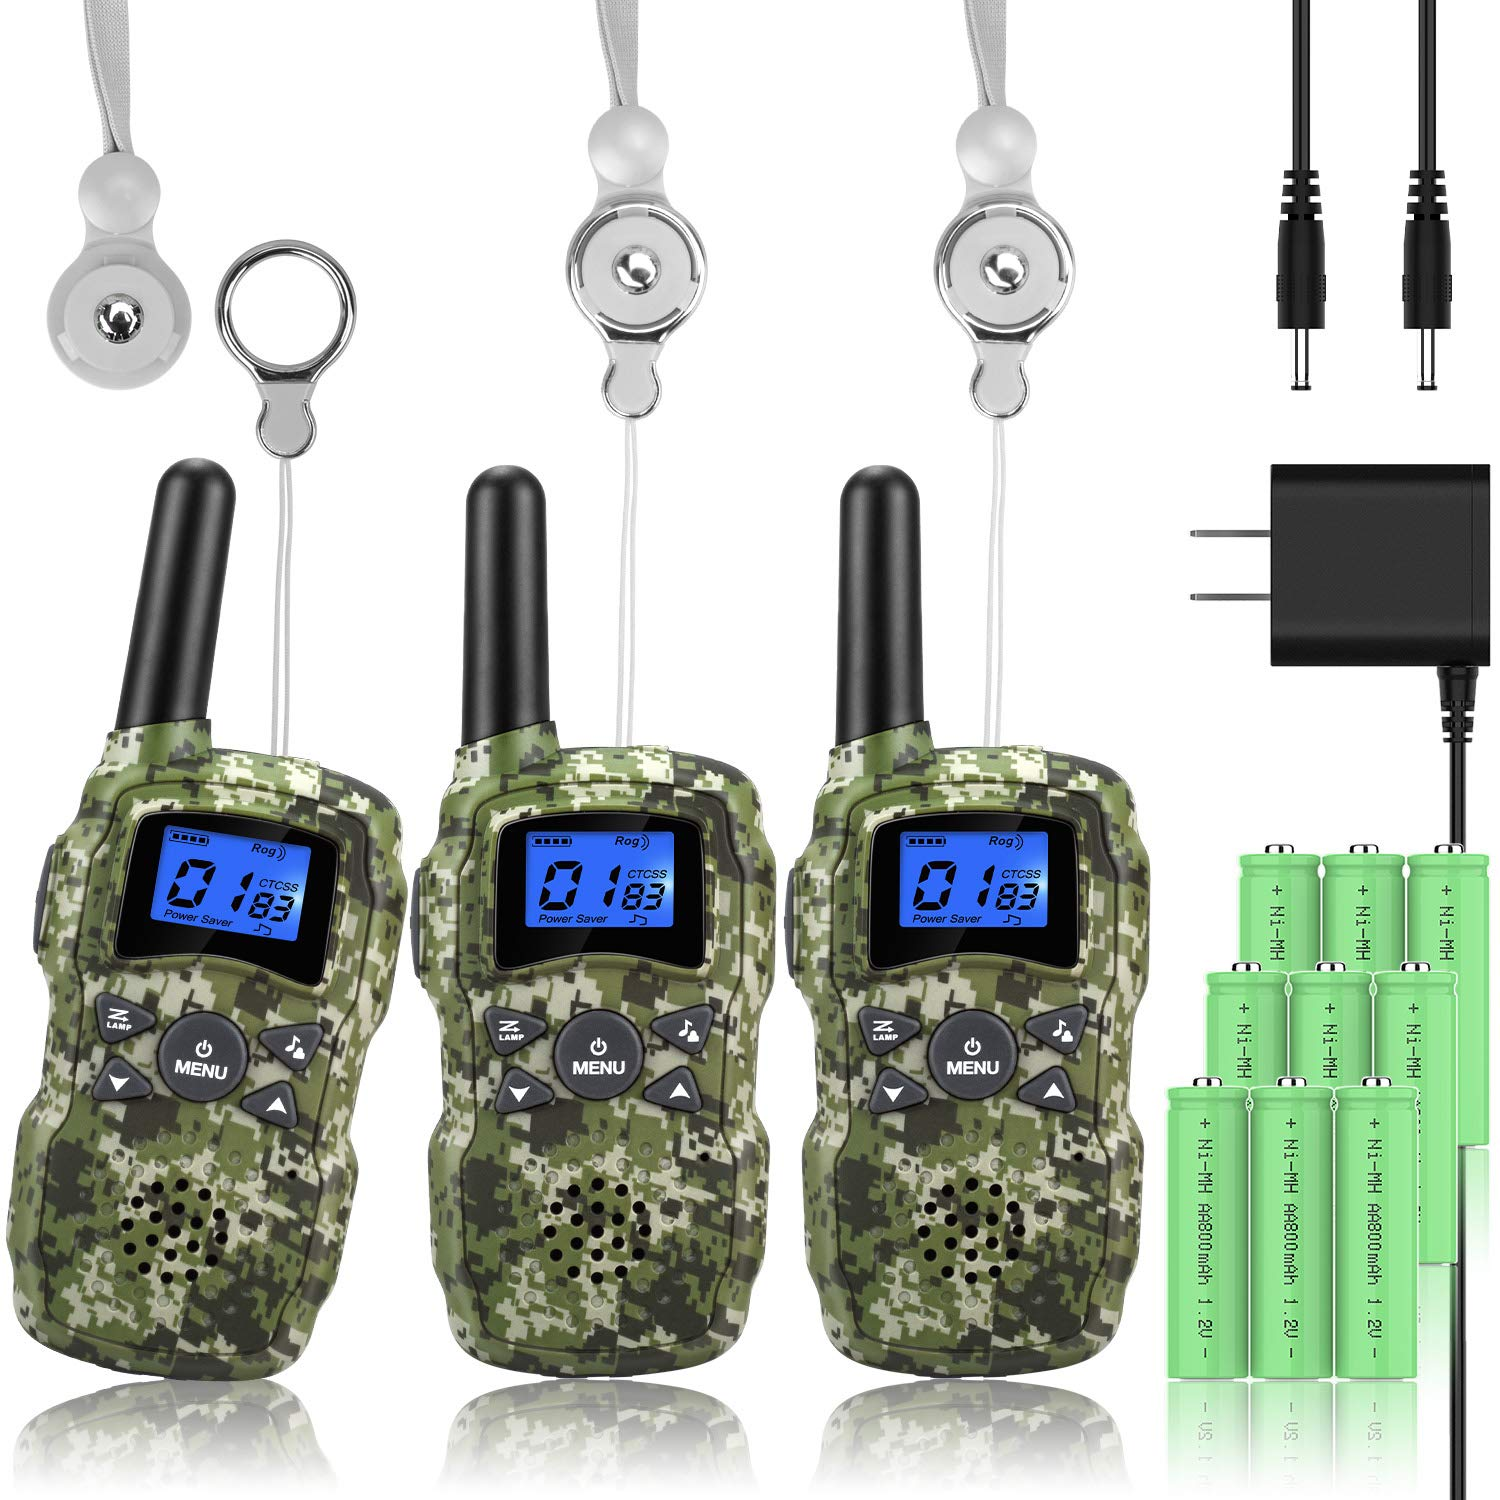 Wishouse 3 Walkie Talkies for Kids Rechargeable with Charger Battery,Family Two Way Radio Talkabout Walky Talky for Adults Long Range, Outdoor Fun Toy Birthday Gift for Girls Boys Teen Toddlers - Camo